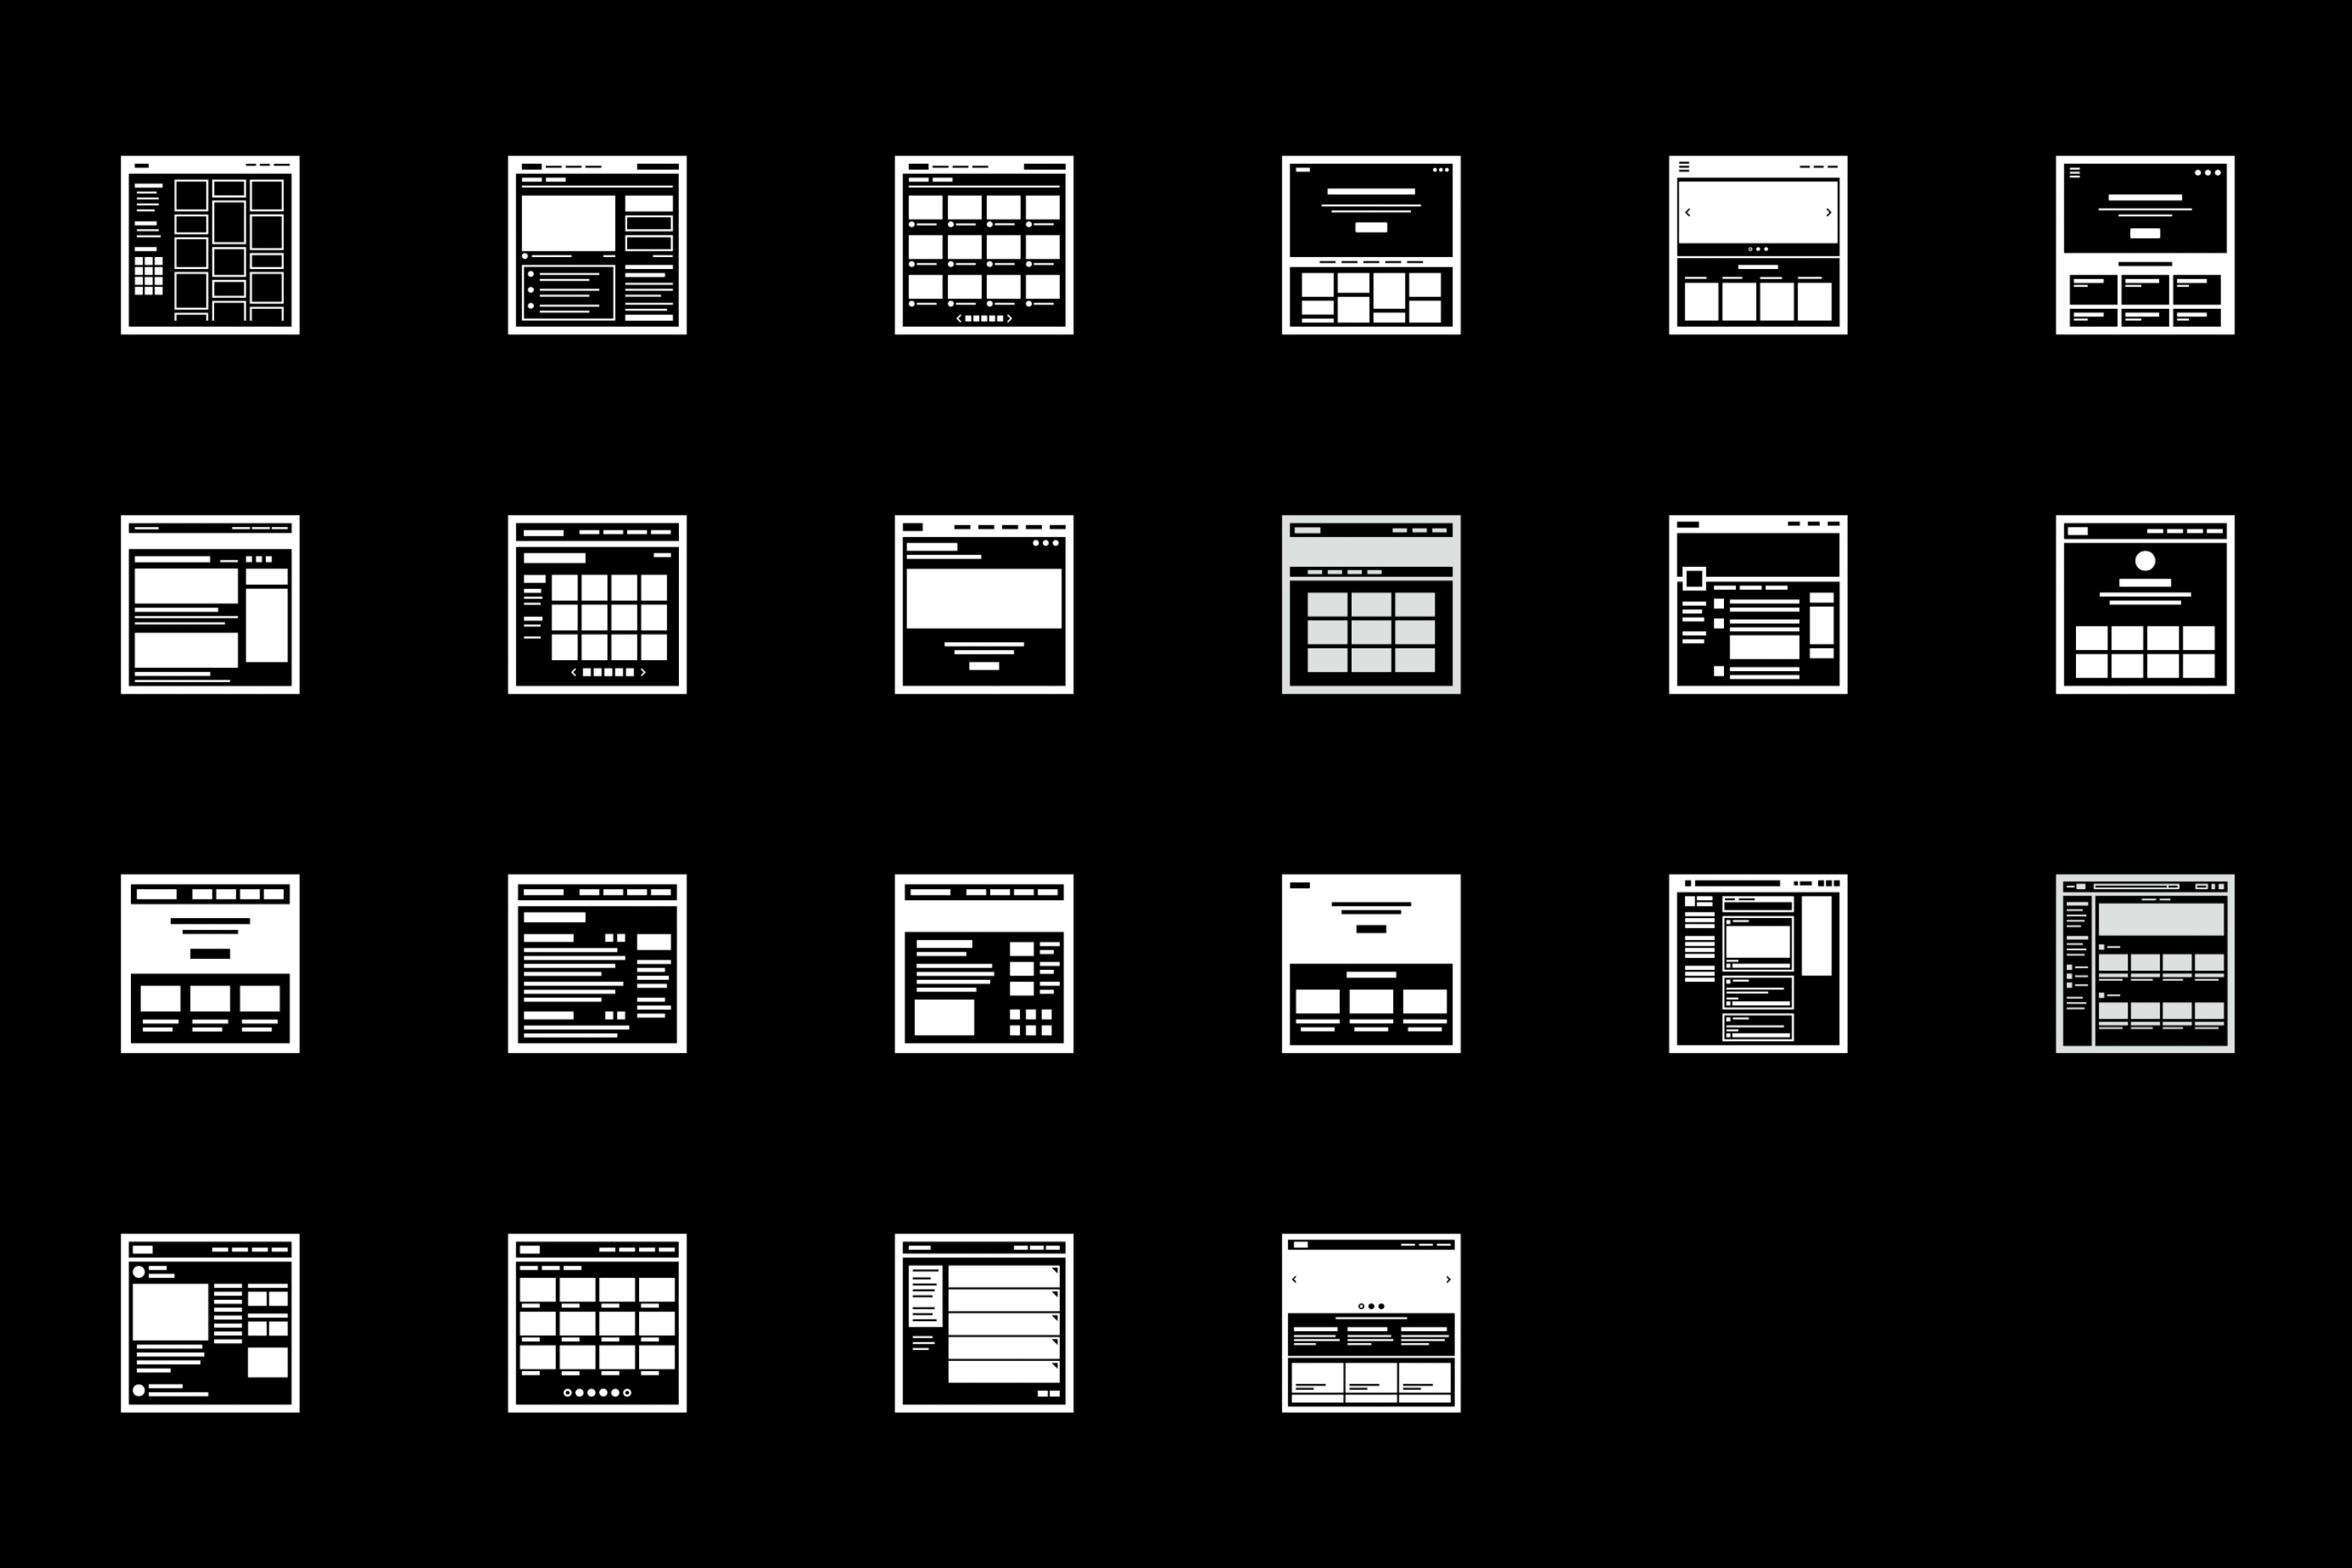 UX icon set designed by Max Miner